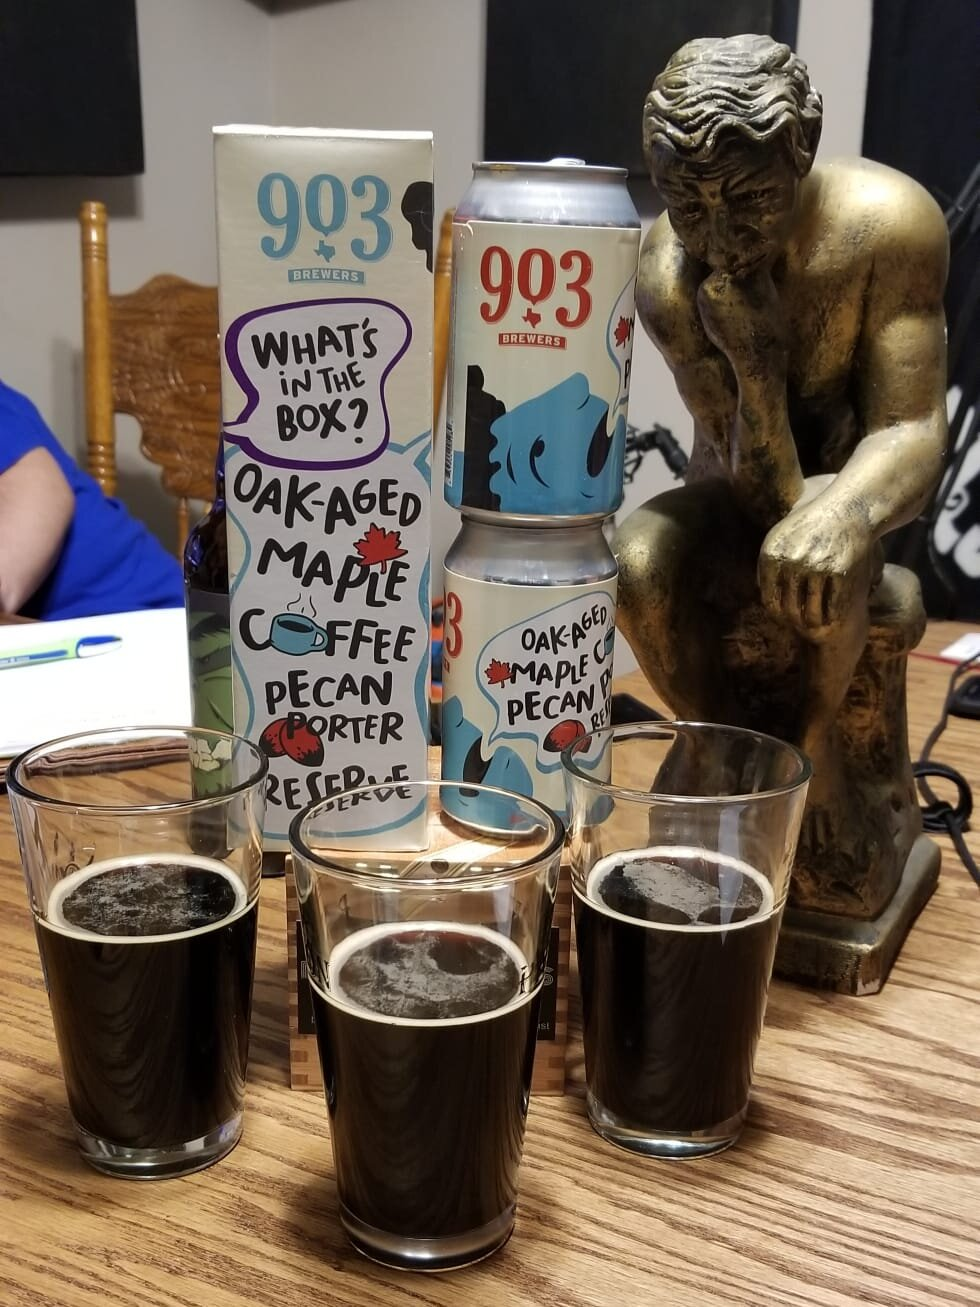 Episode the 69th - Slangapalooza - A beer review, all the slang words for body parts